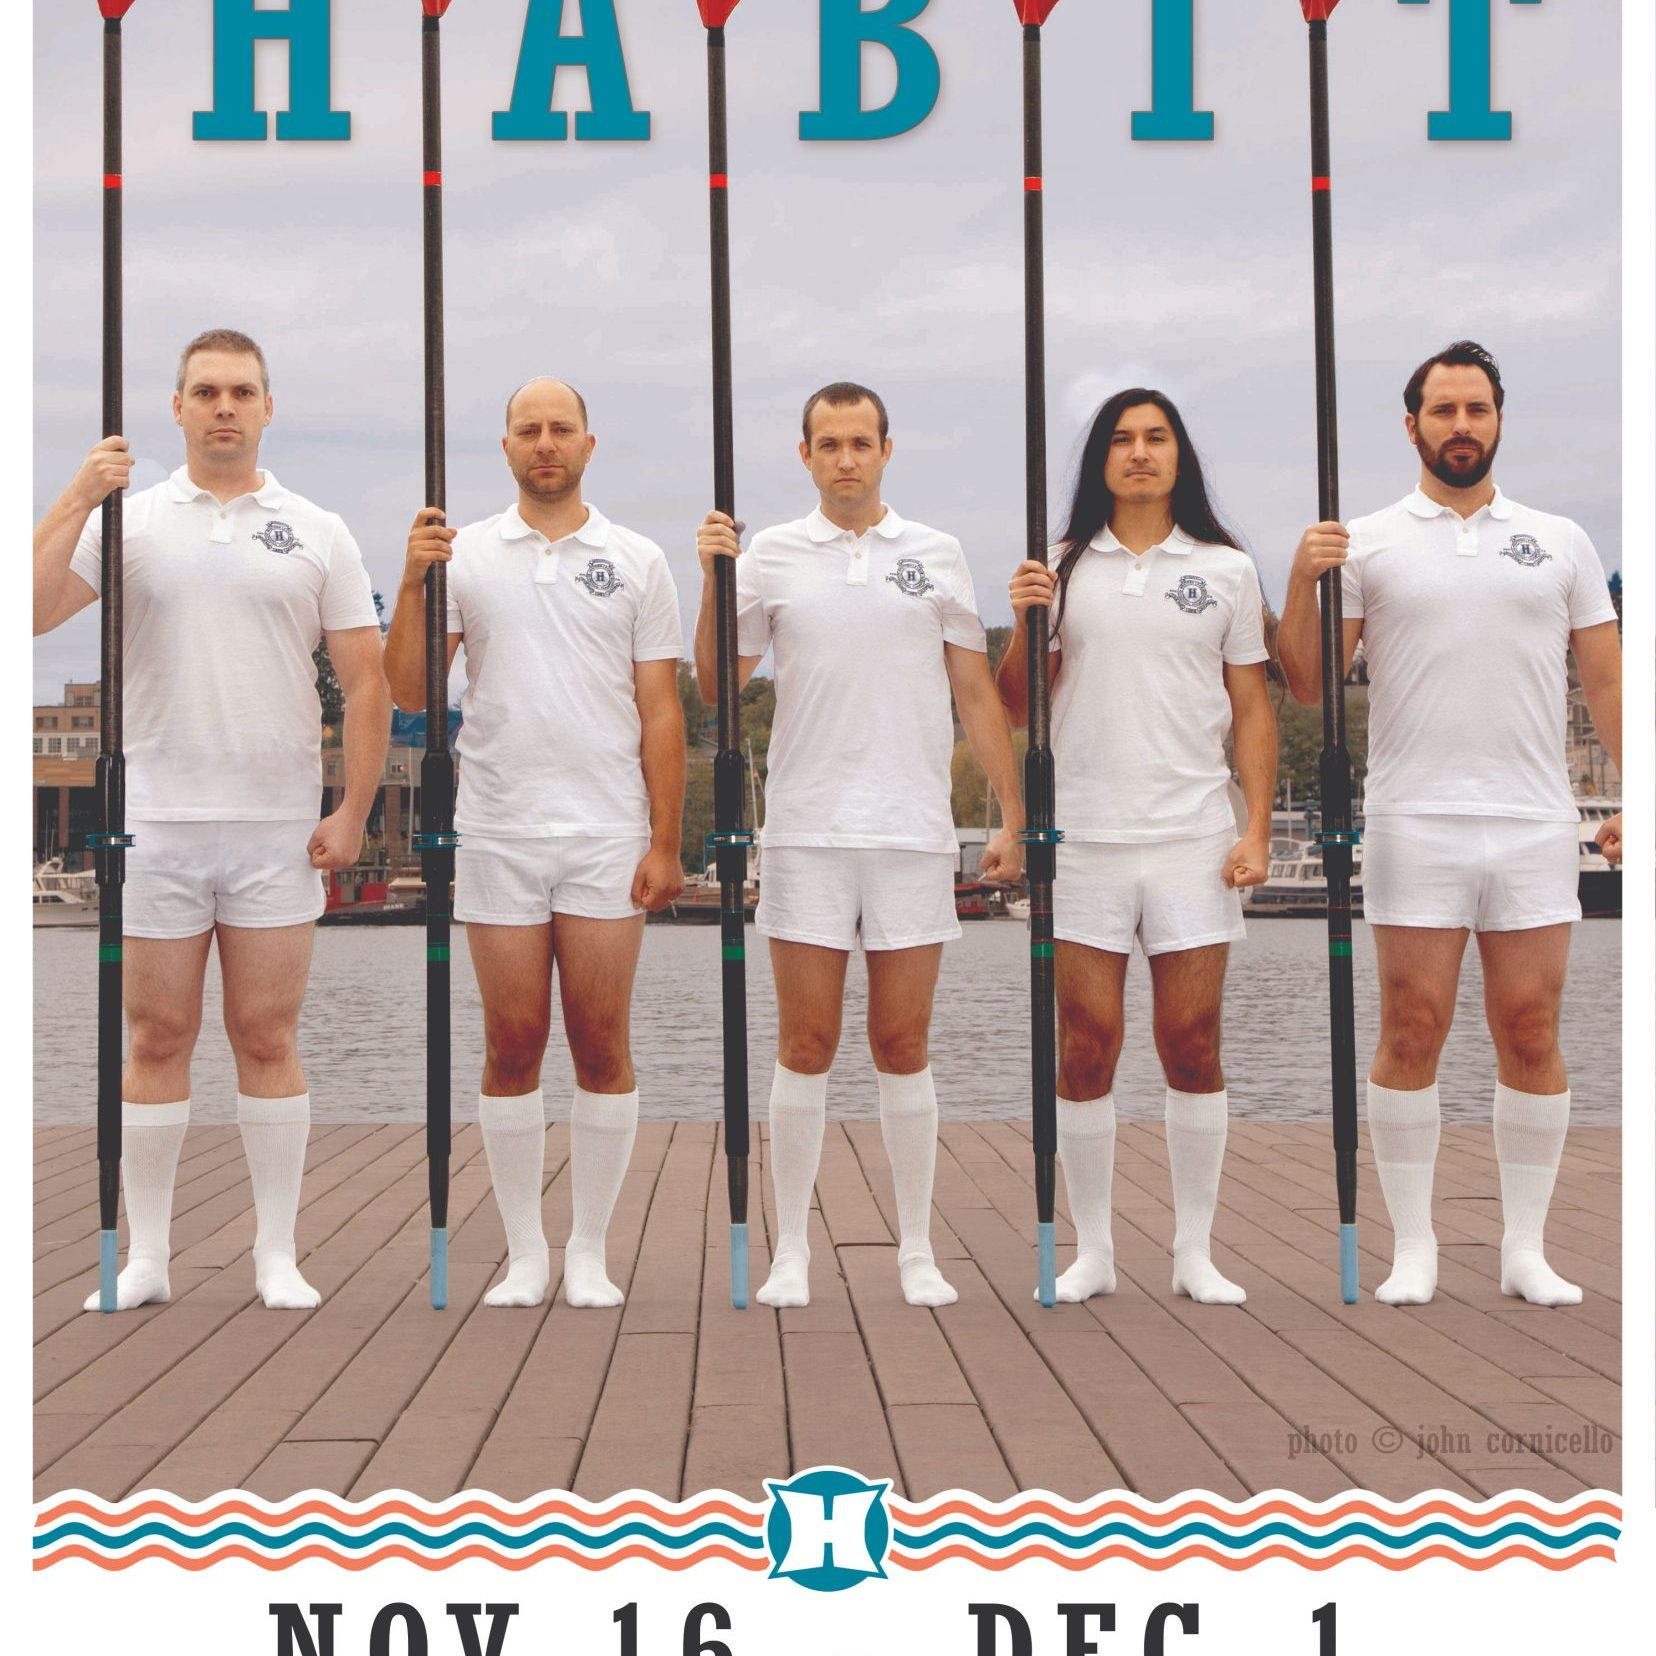 The Habit - Seattle (2012)